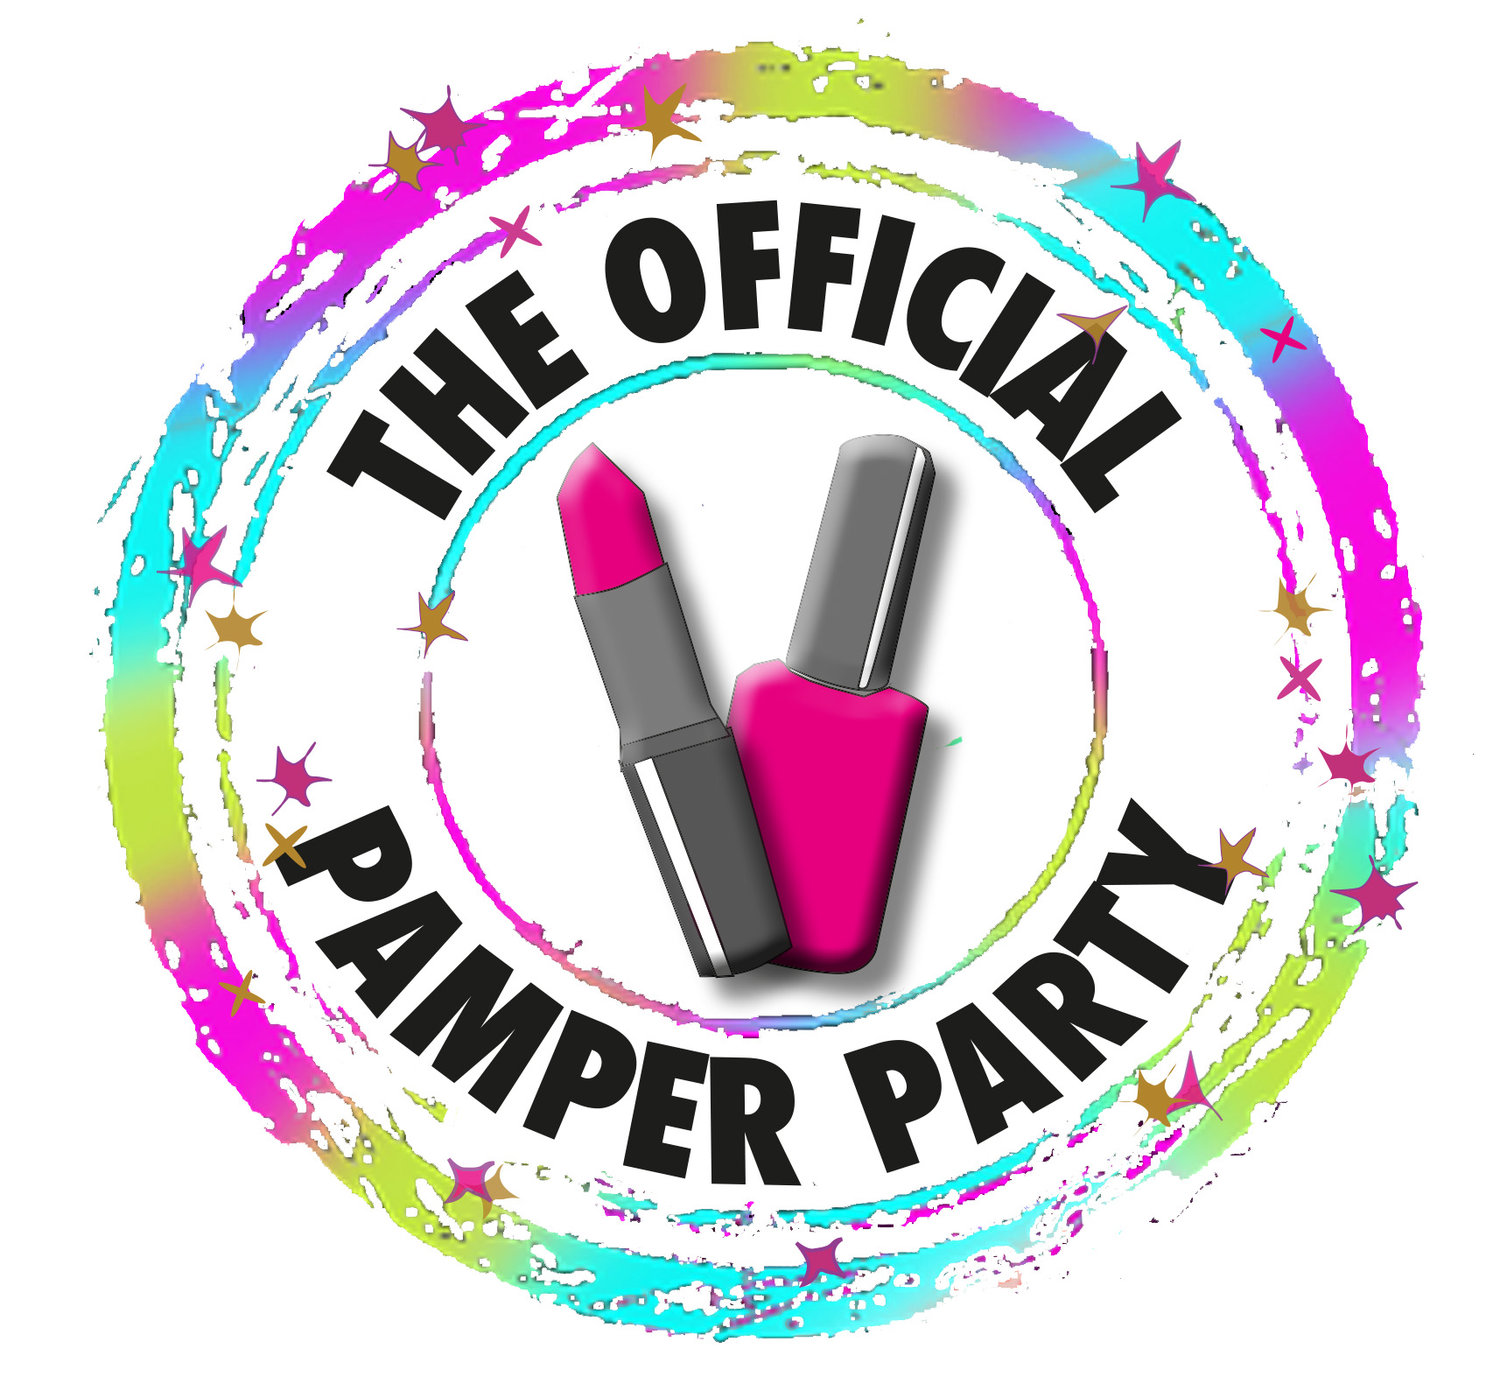 The Official Pamper Party